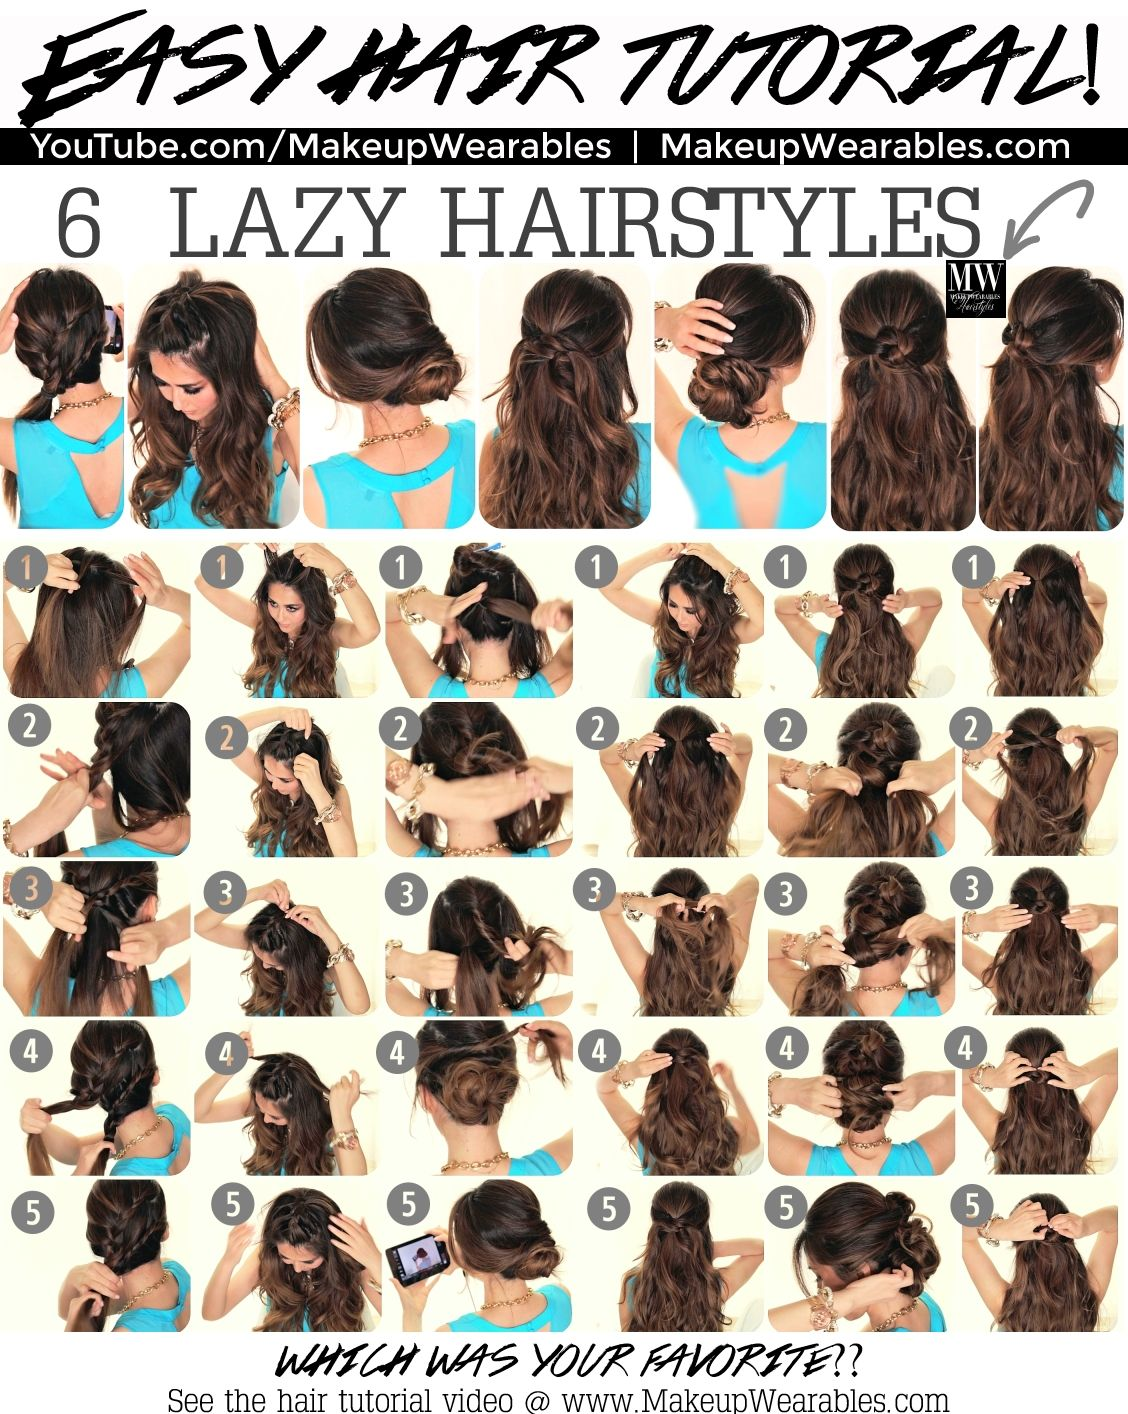 In This Hair Tutorial Video Learn How To Create 6 Easy 5 Minute